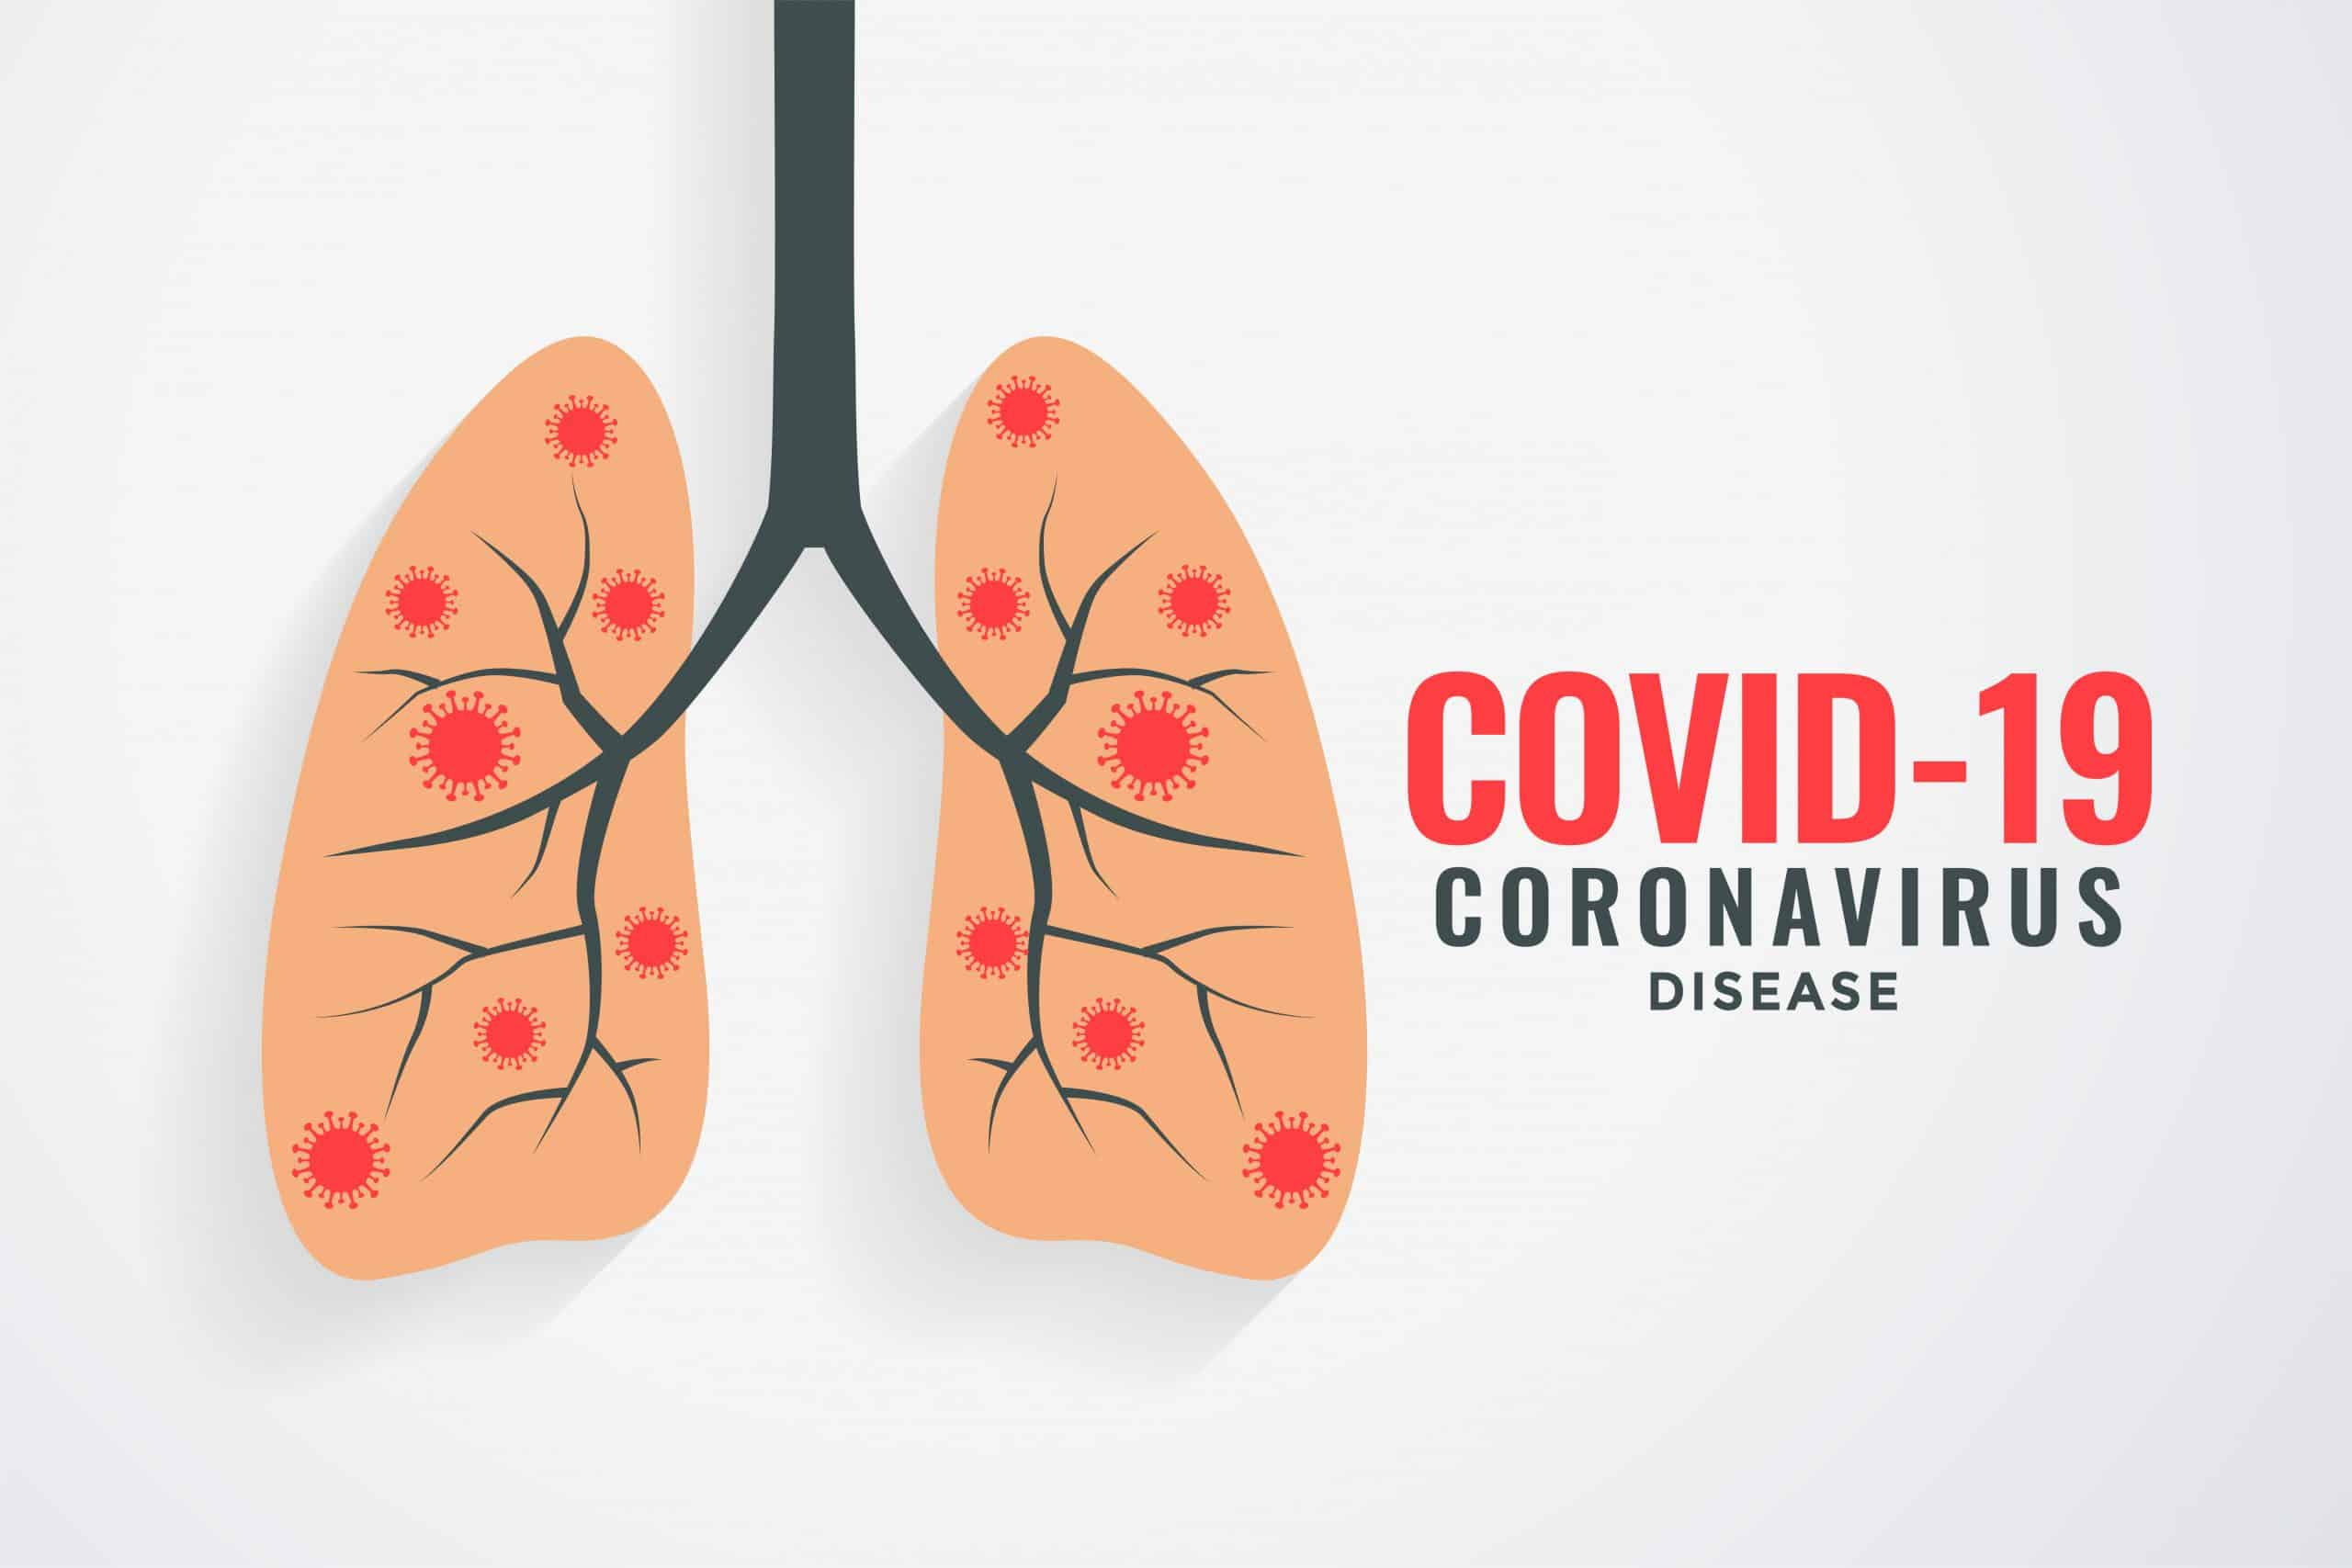 Researchers Say Cbd Could Provide Vital Treatment For Covid-19